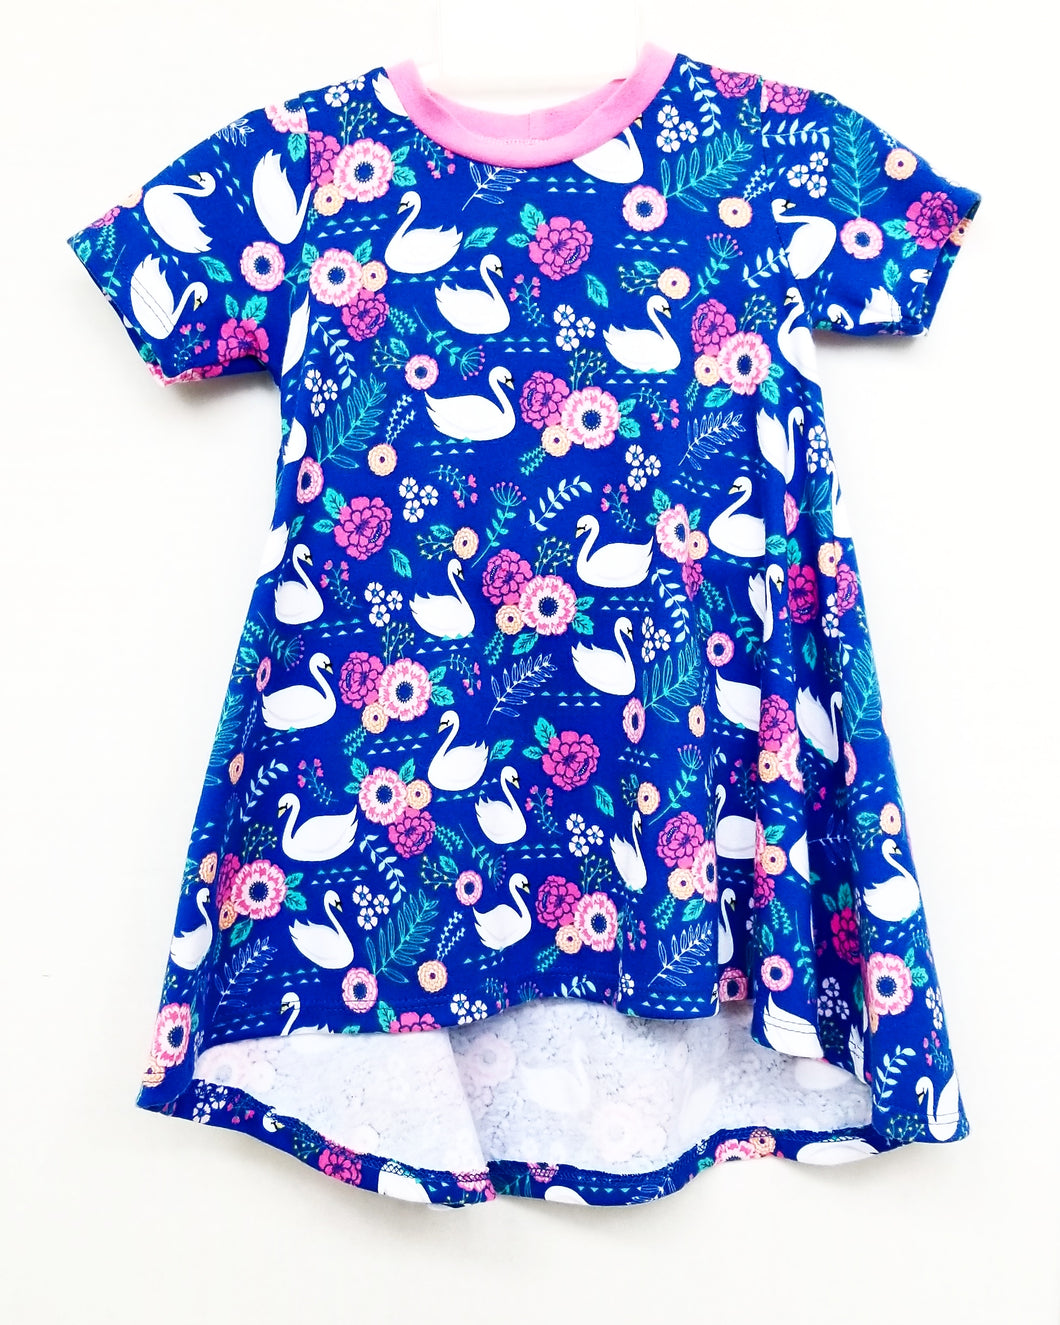 DribbleBabies - T-Shirt Dress (Swan)